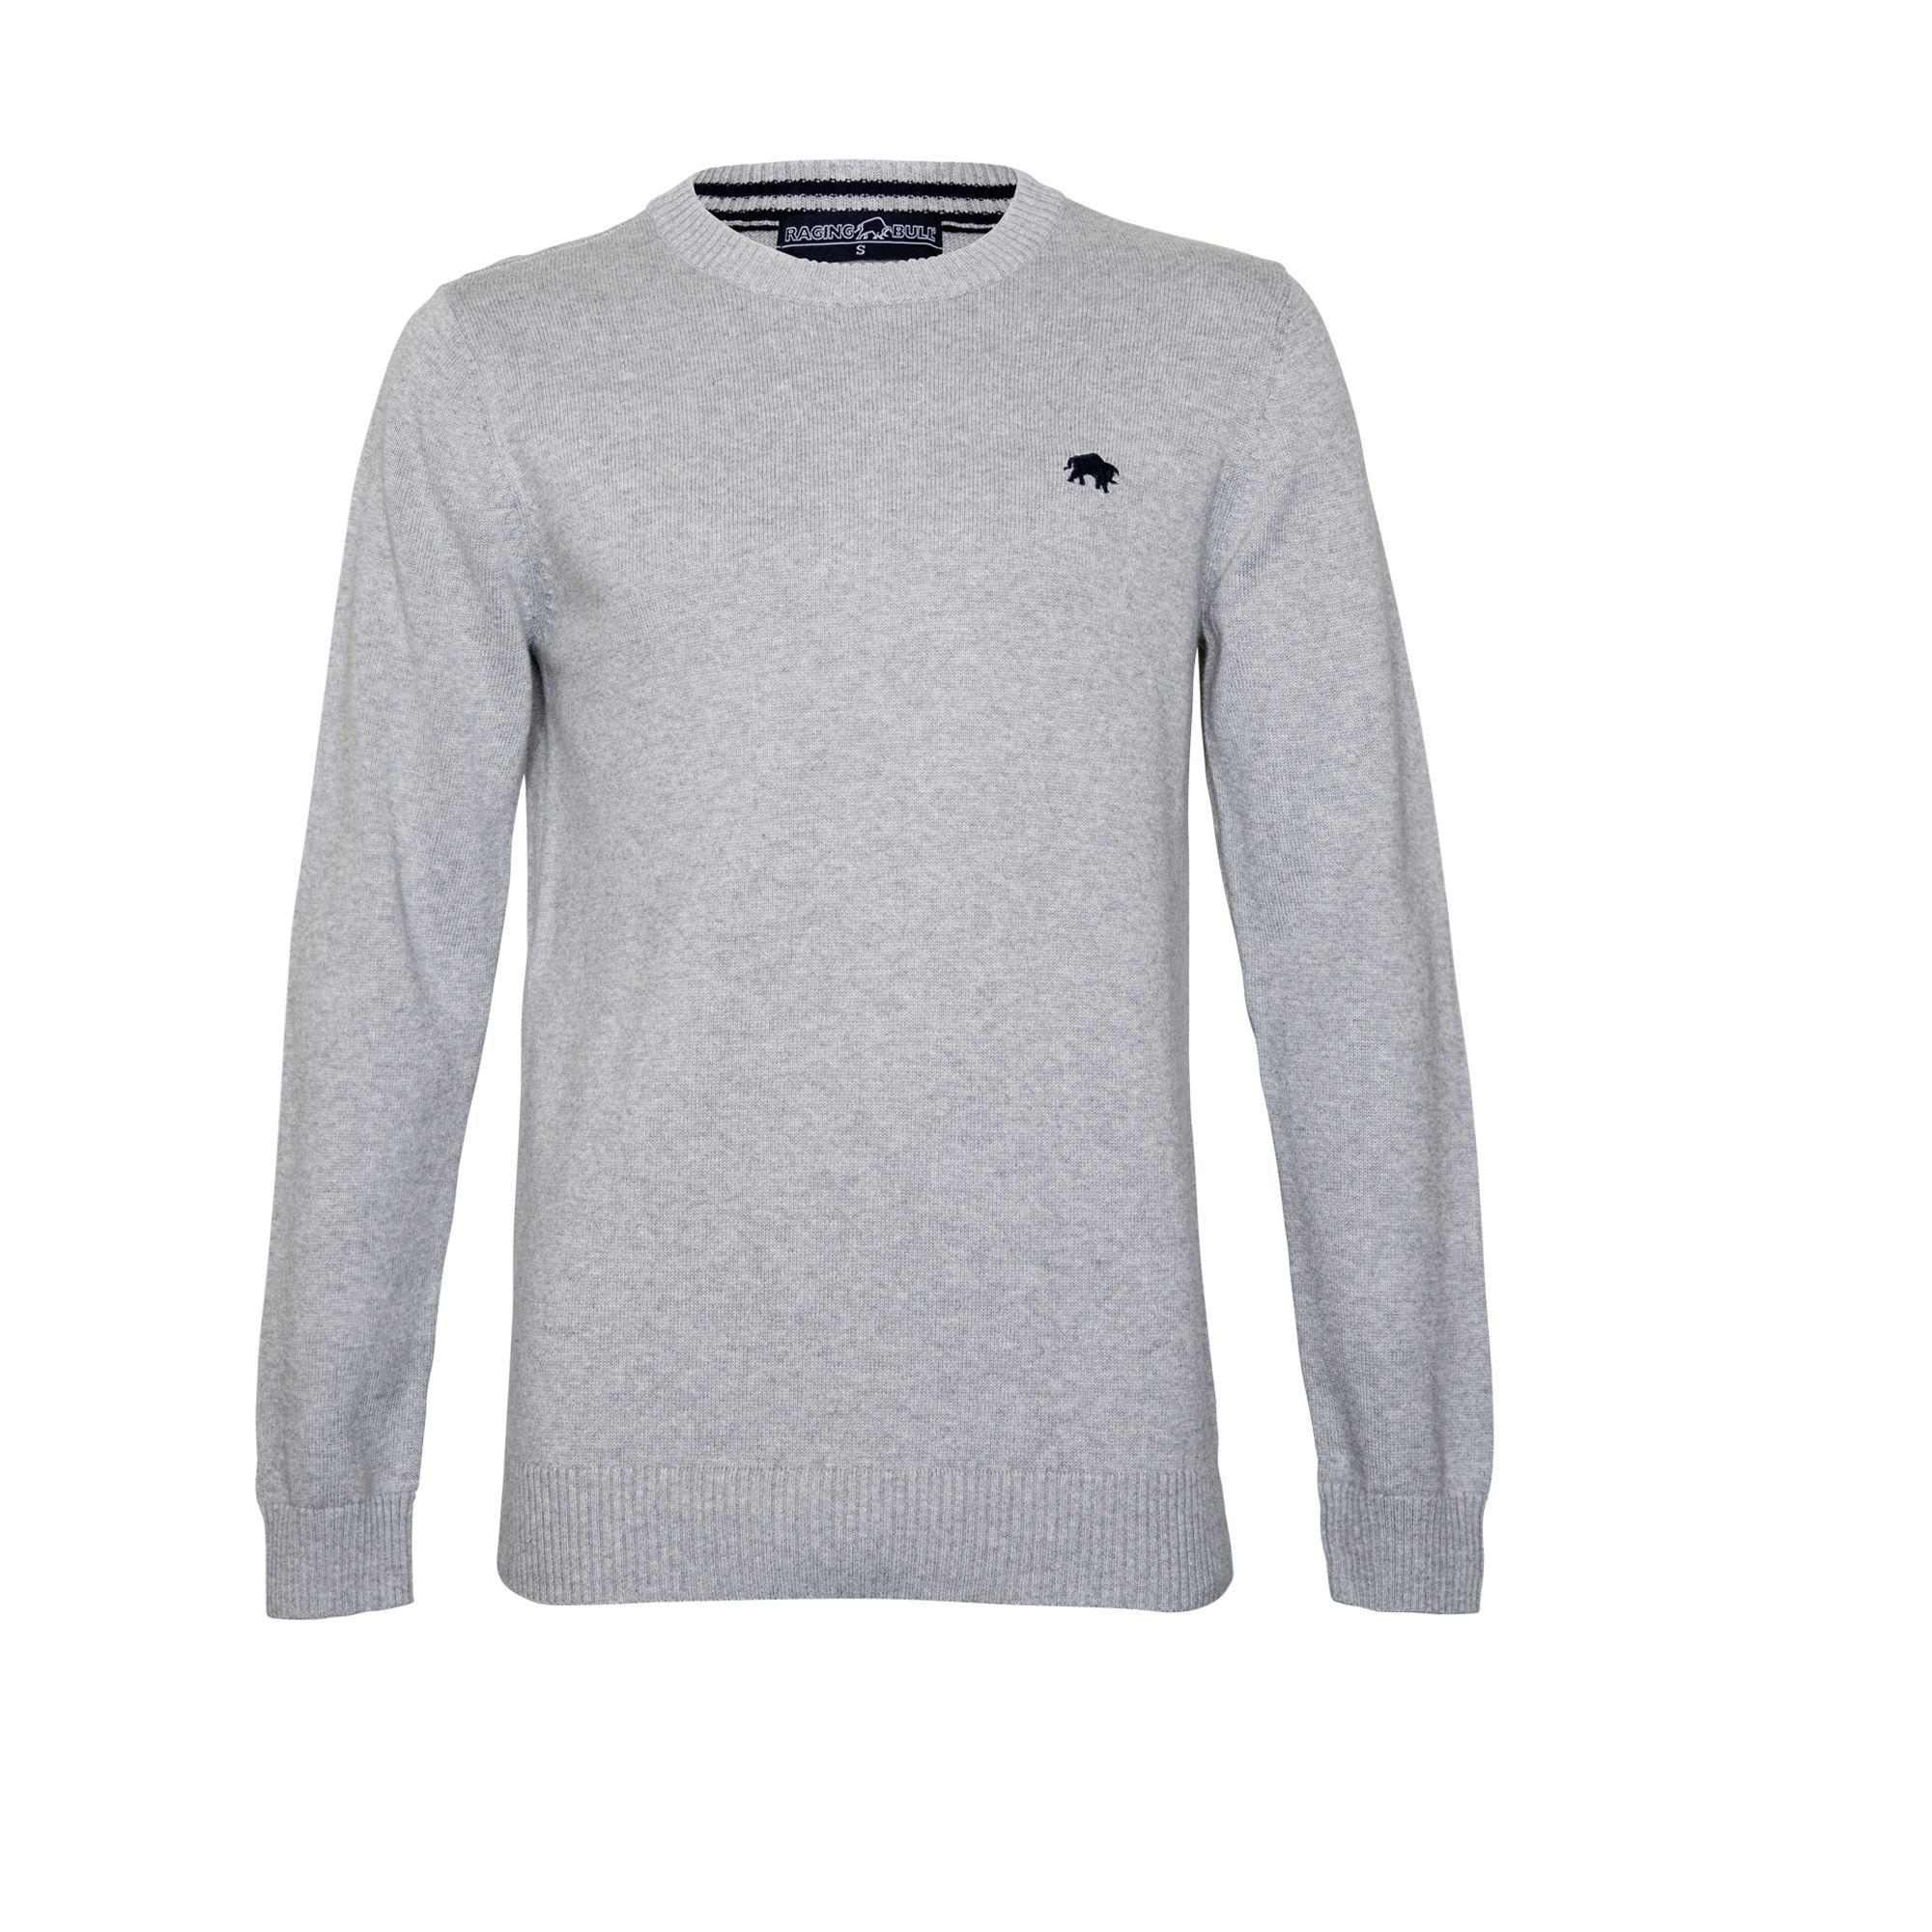 8155119dfc449c Raging Bull - Gray Grey Cotton And Cashmere Blend Crew Neck Sweater for Men  - Lyst. View fullscreen